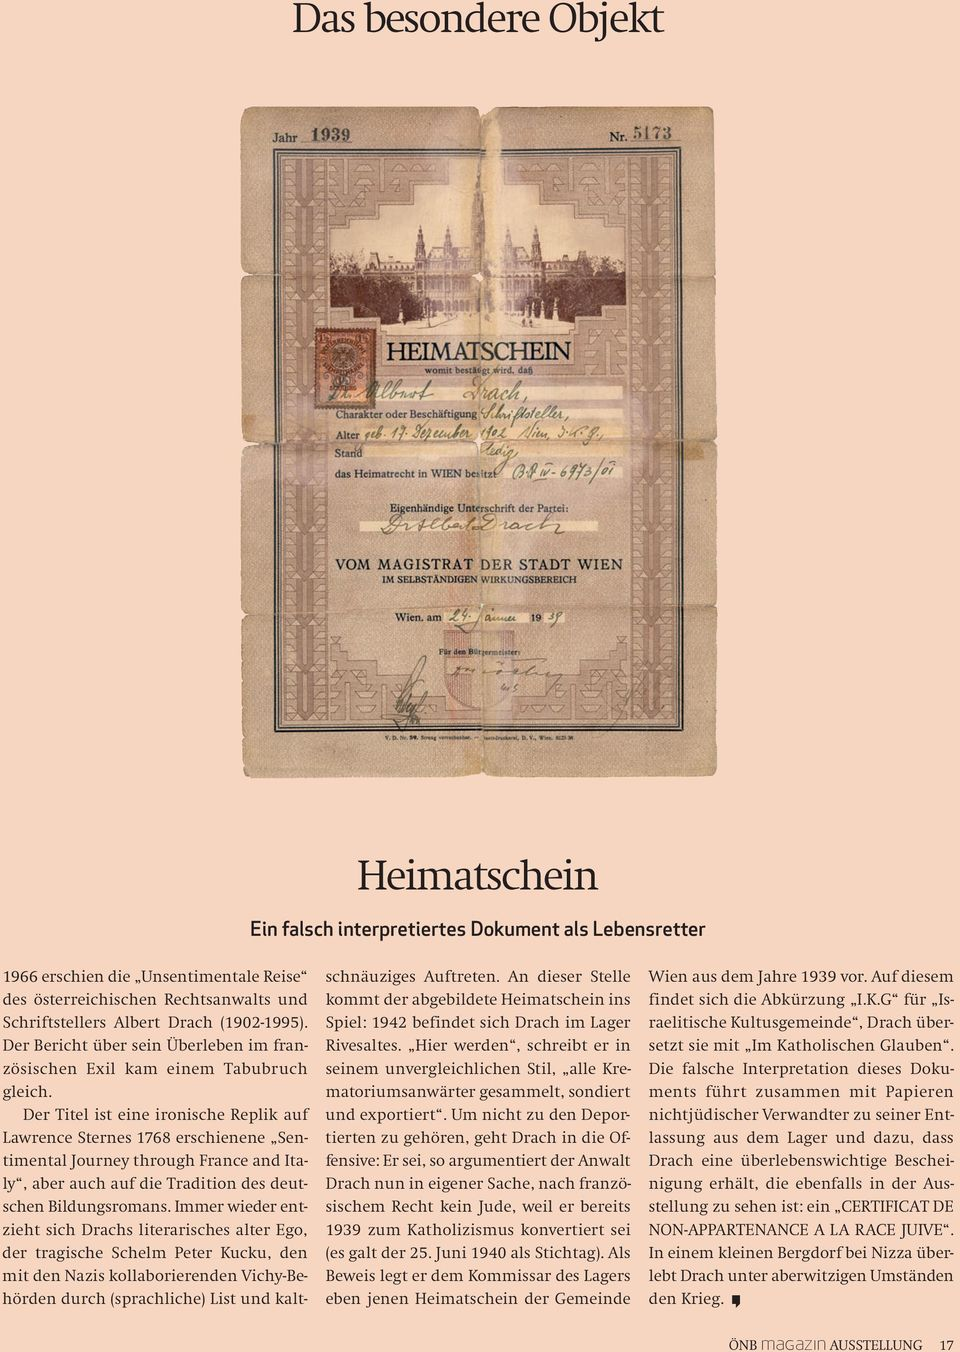 Der Titel ist eine ironische Replik auf Lawrence Sternes 1768 erschienene Sentimental Journey through France and Italy, aber auch auf die Tradition des deutschen Bildungsromans.